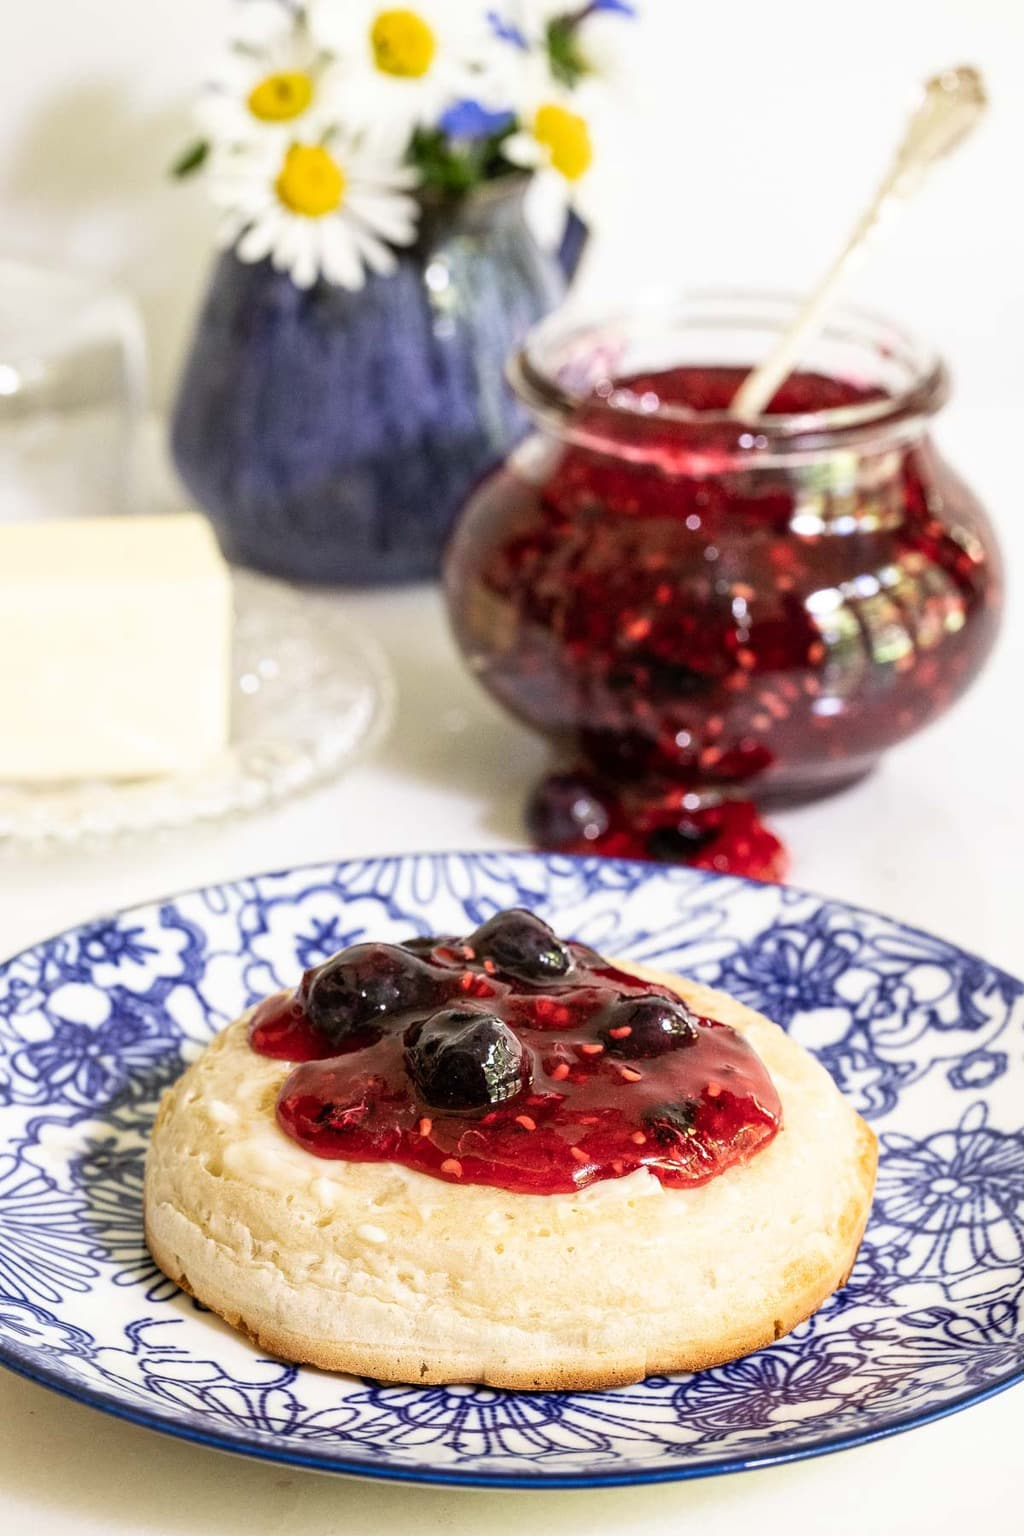 Vertical photo of a jar of Queen's Jam (Raspberry Blueberry Jam) with the jam spread on a crumpet.